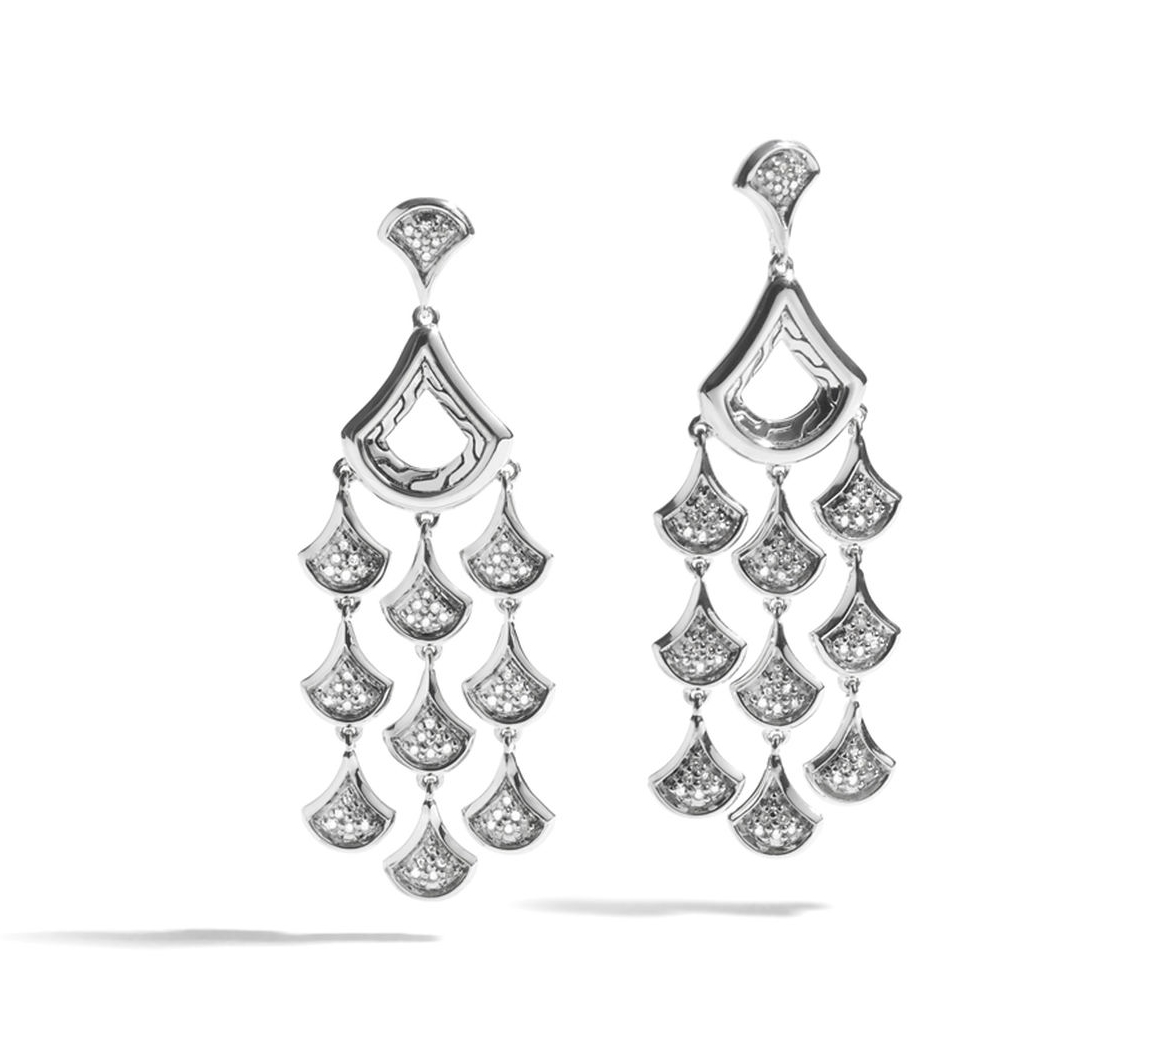 John Hardy Naga Chandelier Earrings with Diamonds